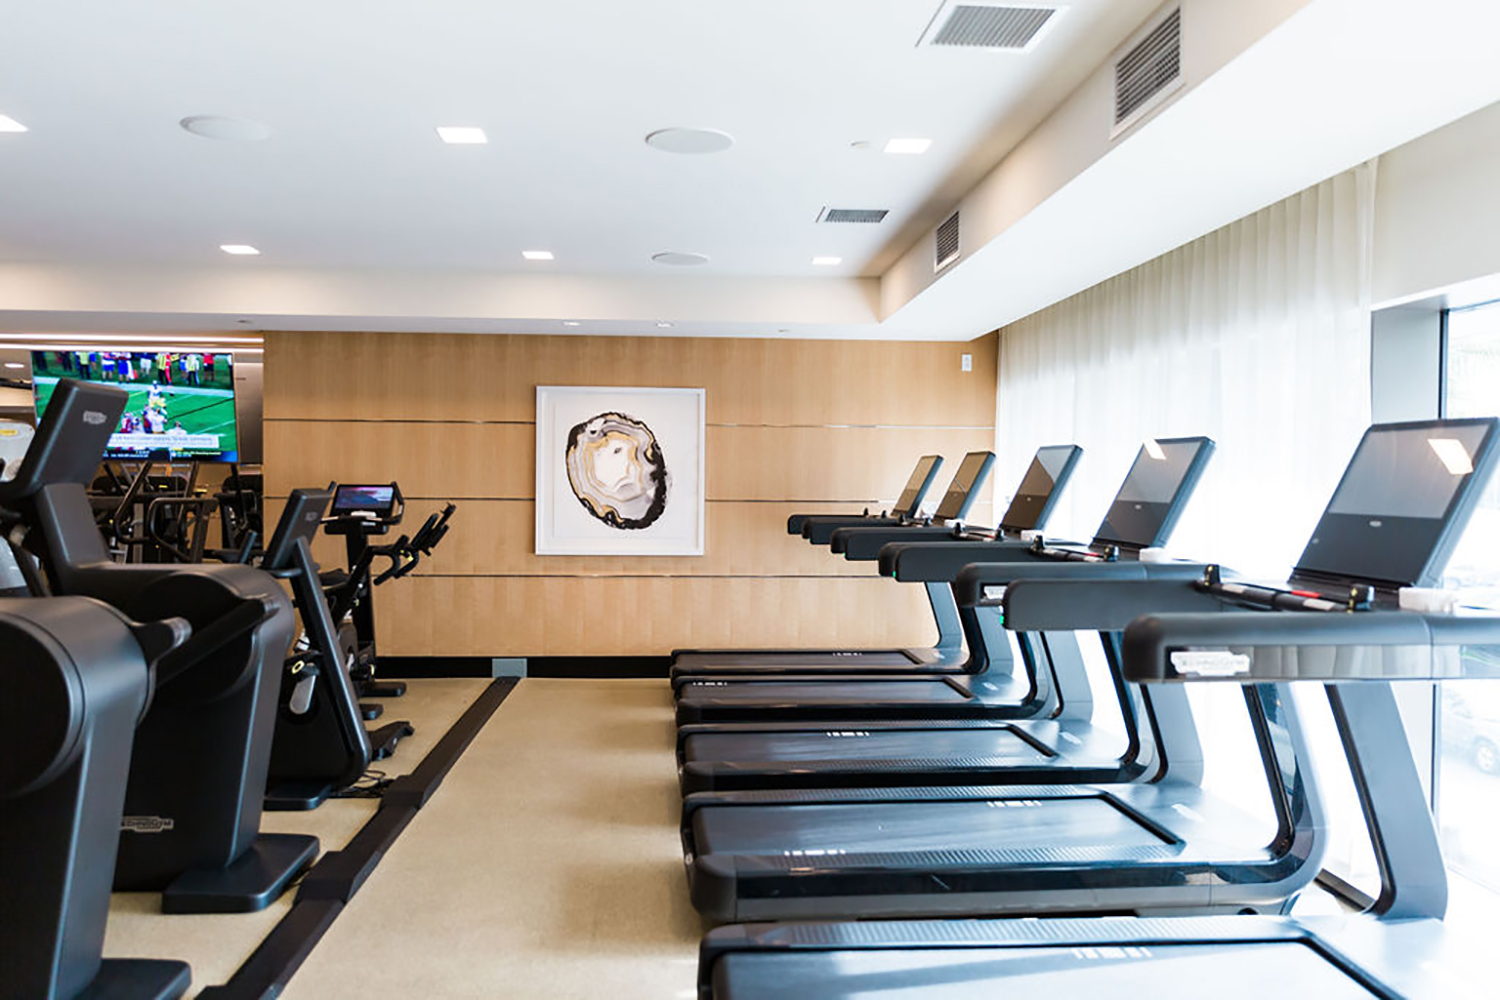 The state-of-the-art fitness center features Technogym equipment. [Photo by Vanessa Tierney]